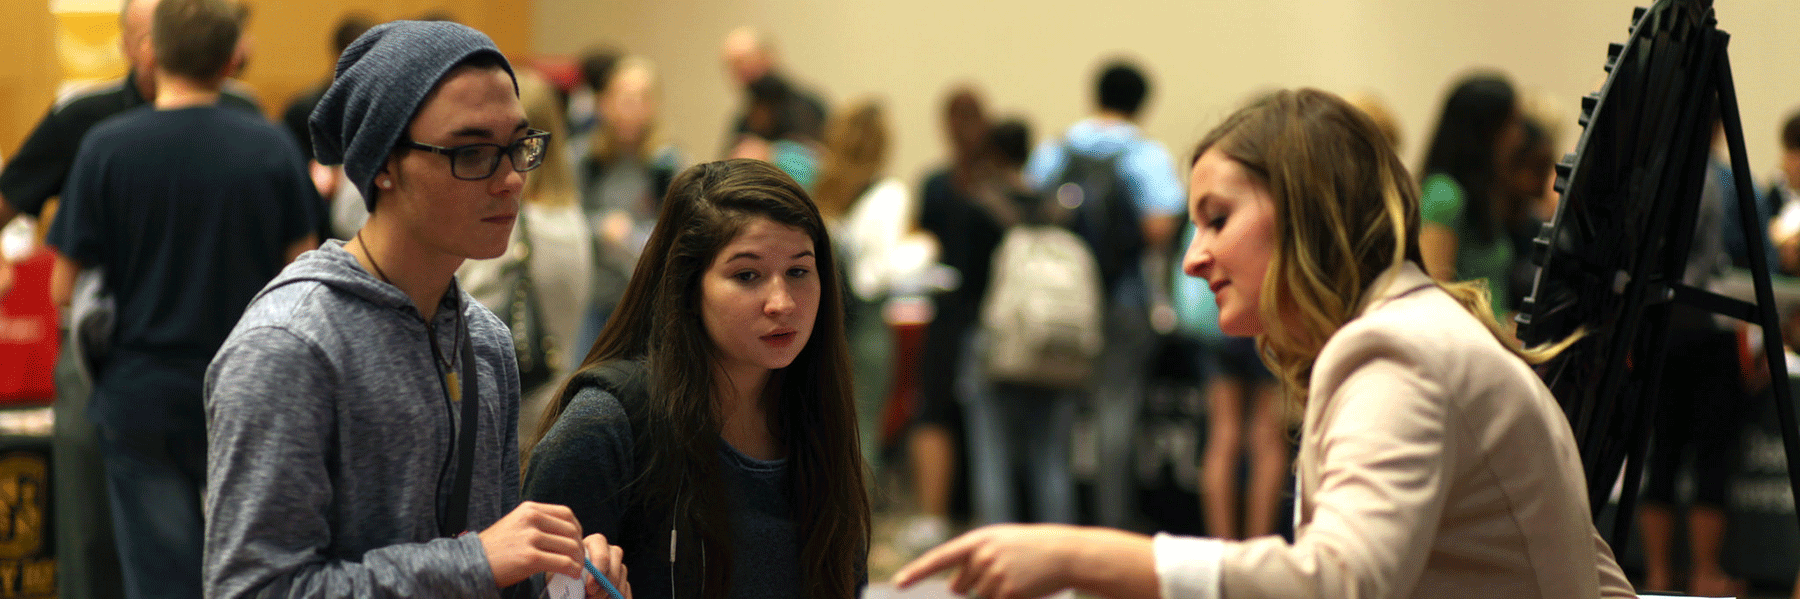 A photo of students participating in a career event on campus.